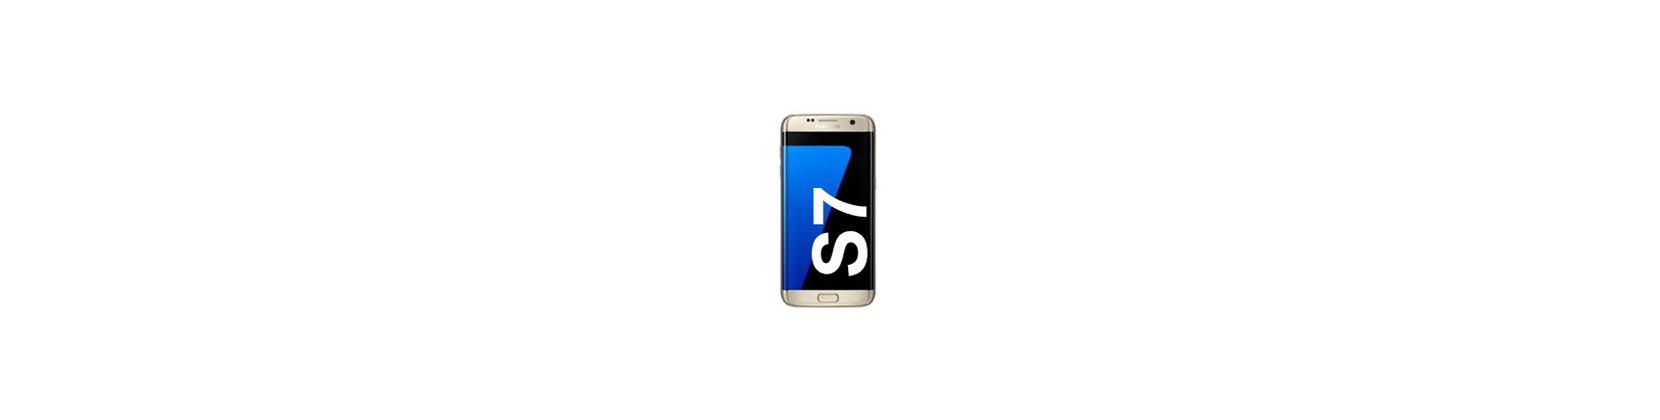 Spare parts for Samsung Galaxy S7